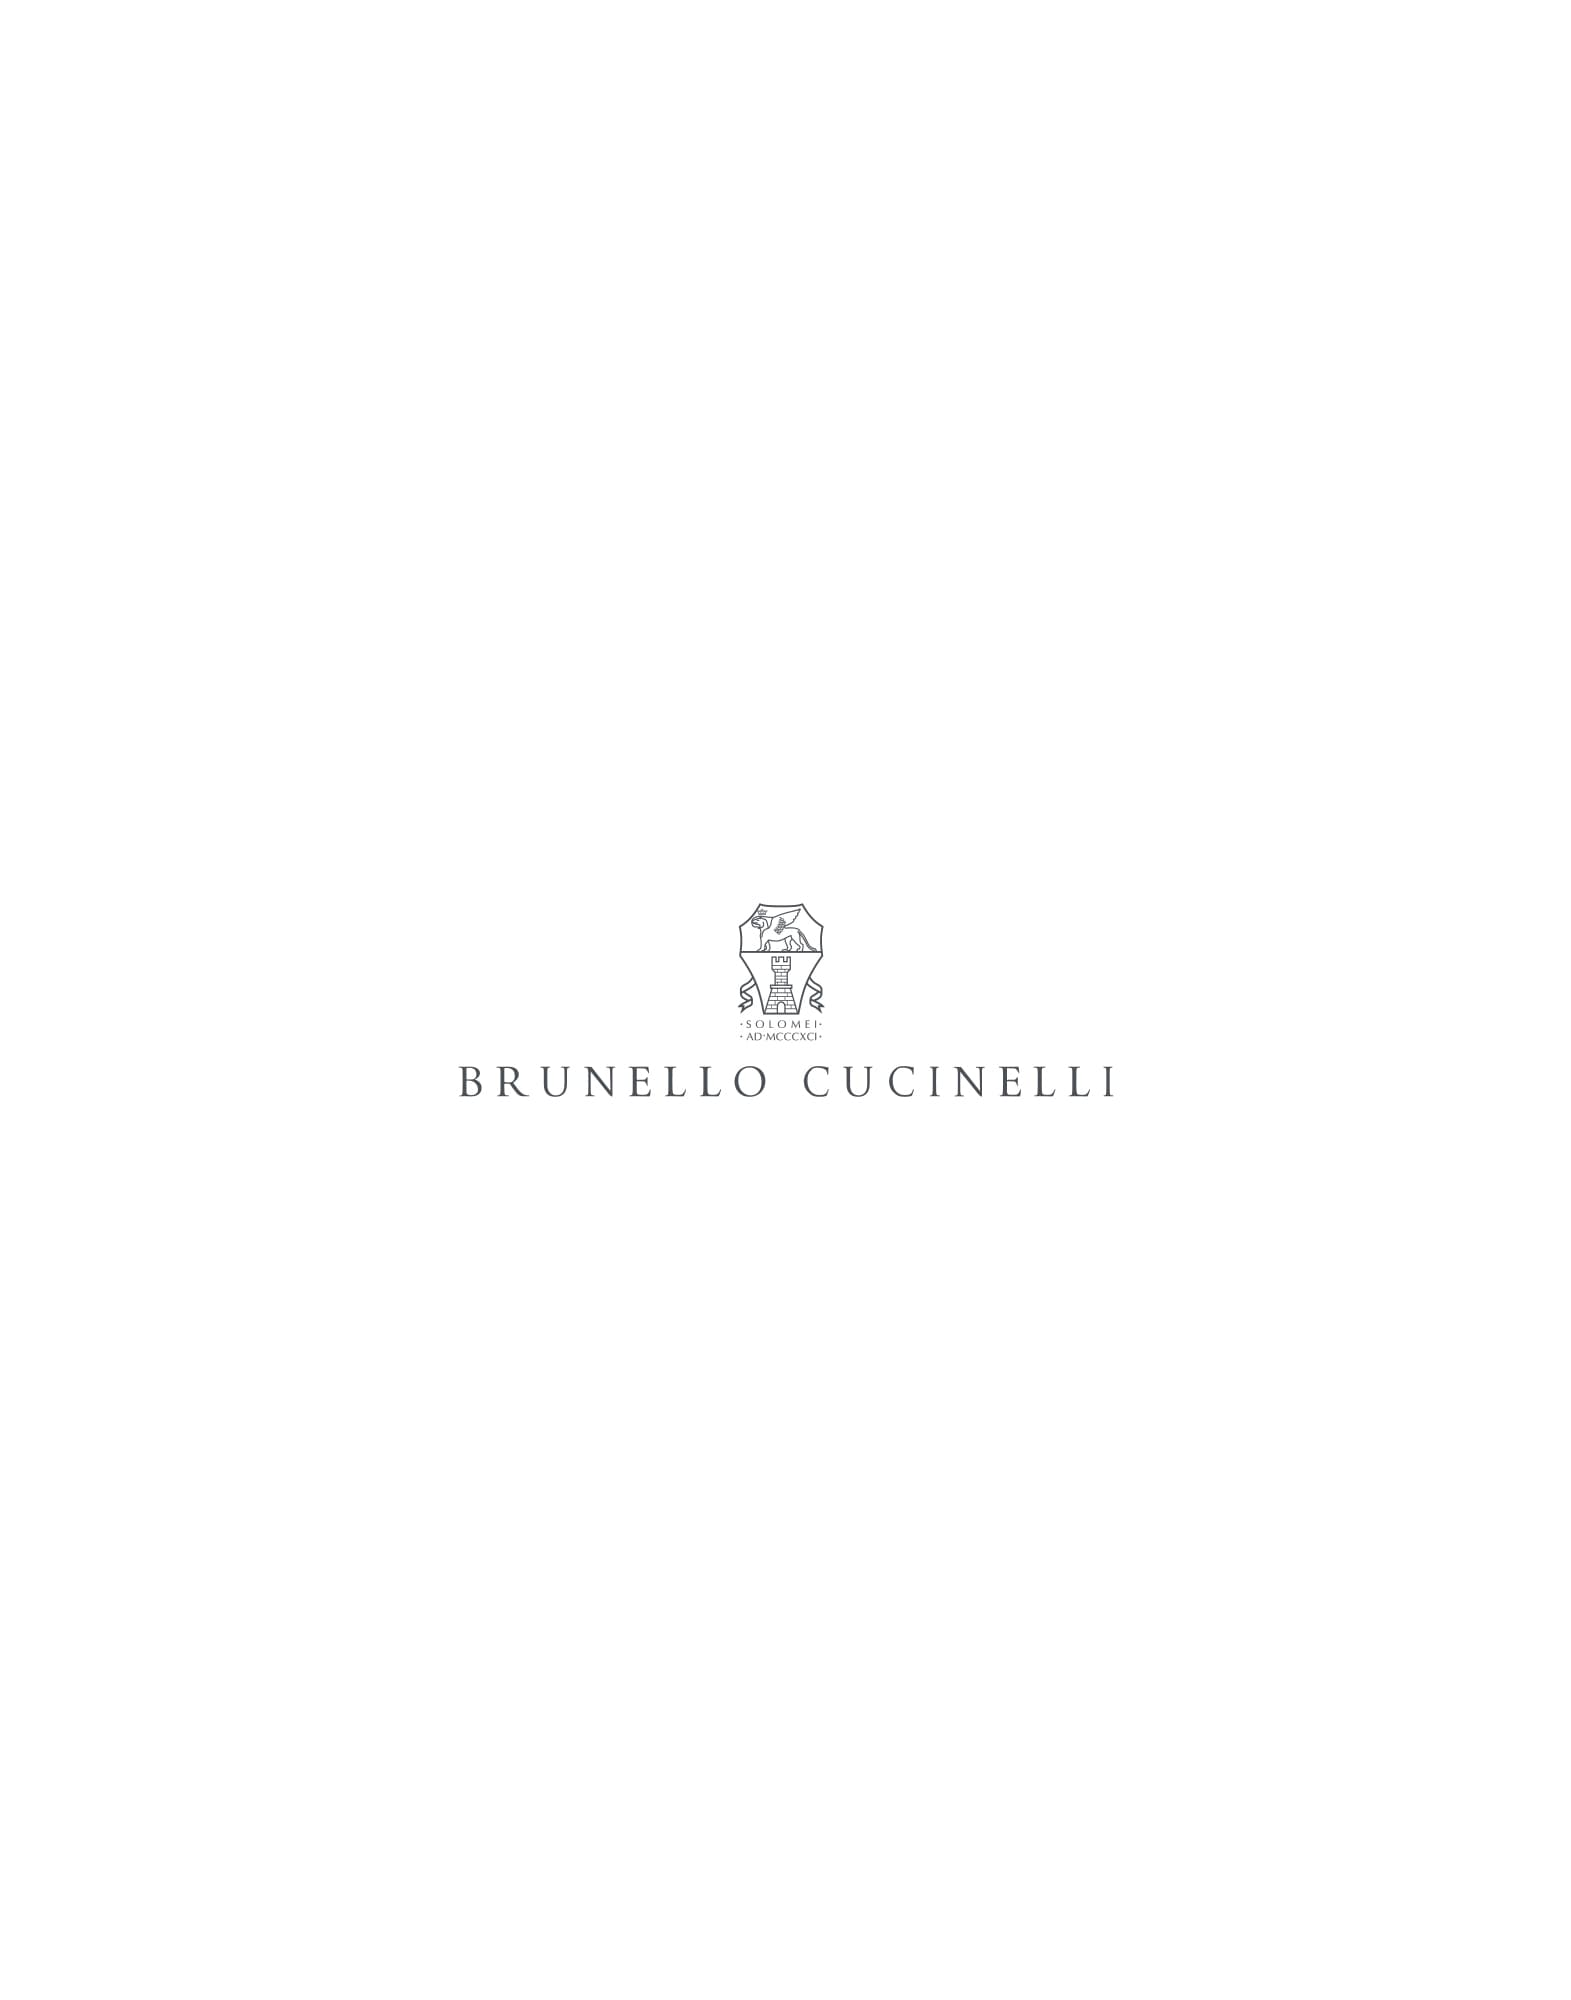 Wool, cashmere and silk sweater Blue Woman - Brunello Cucinelli